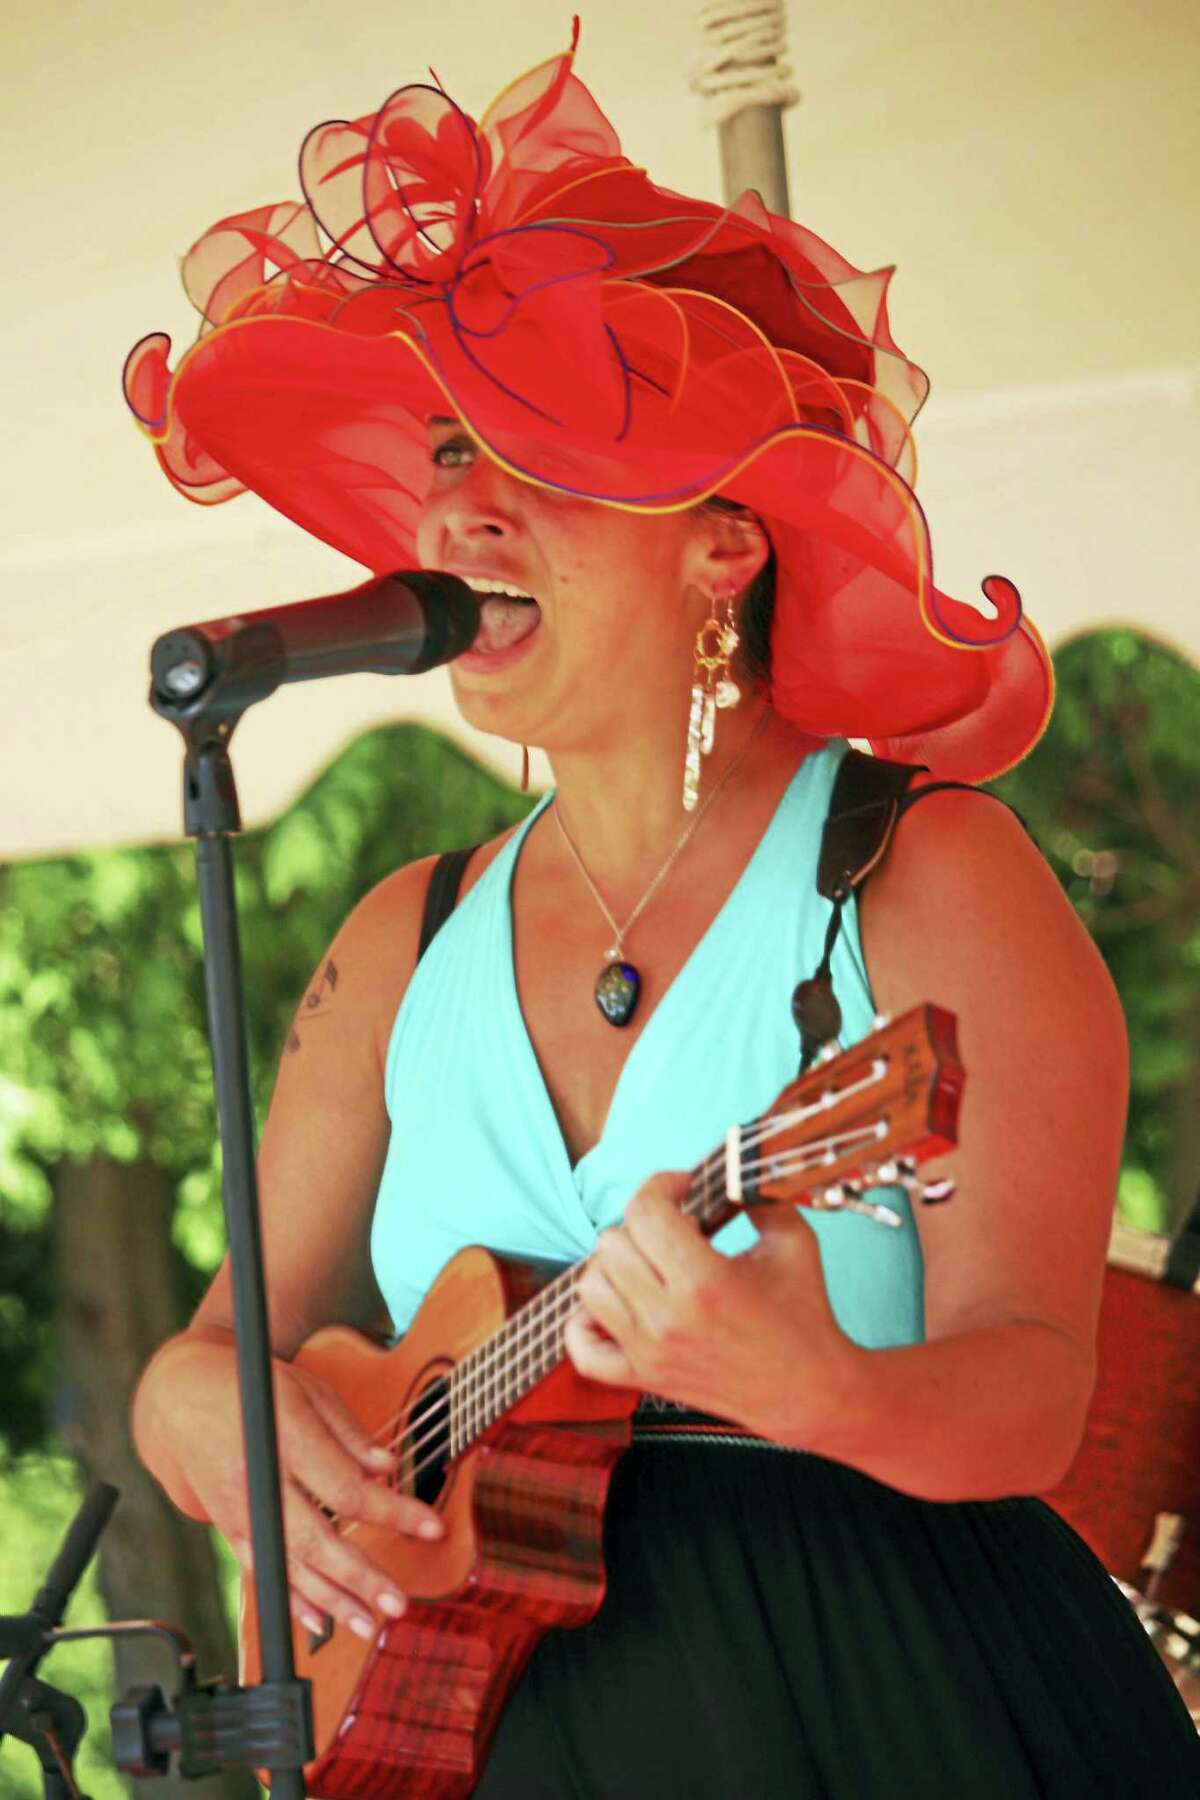 JCherry, artist and producer of The Middletown Music Festival, will also be one of the many performers at the weekend event, Aug. 4-6.